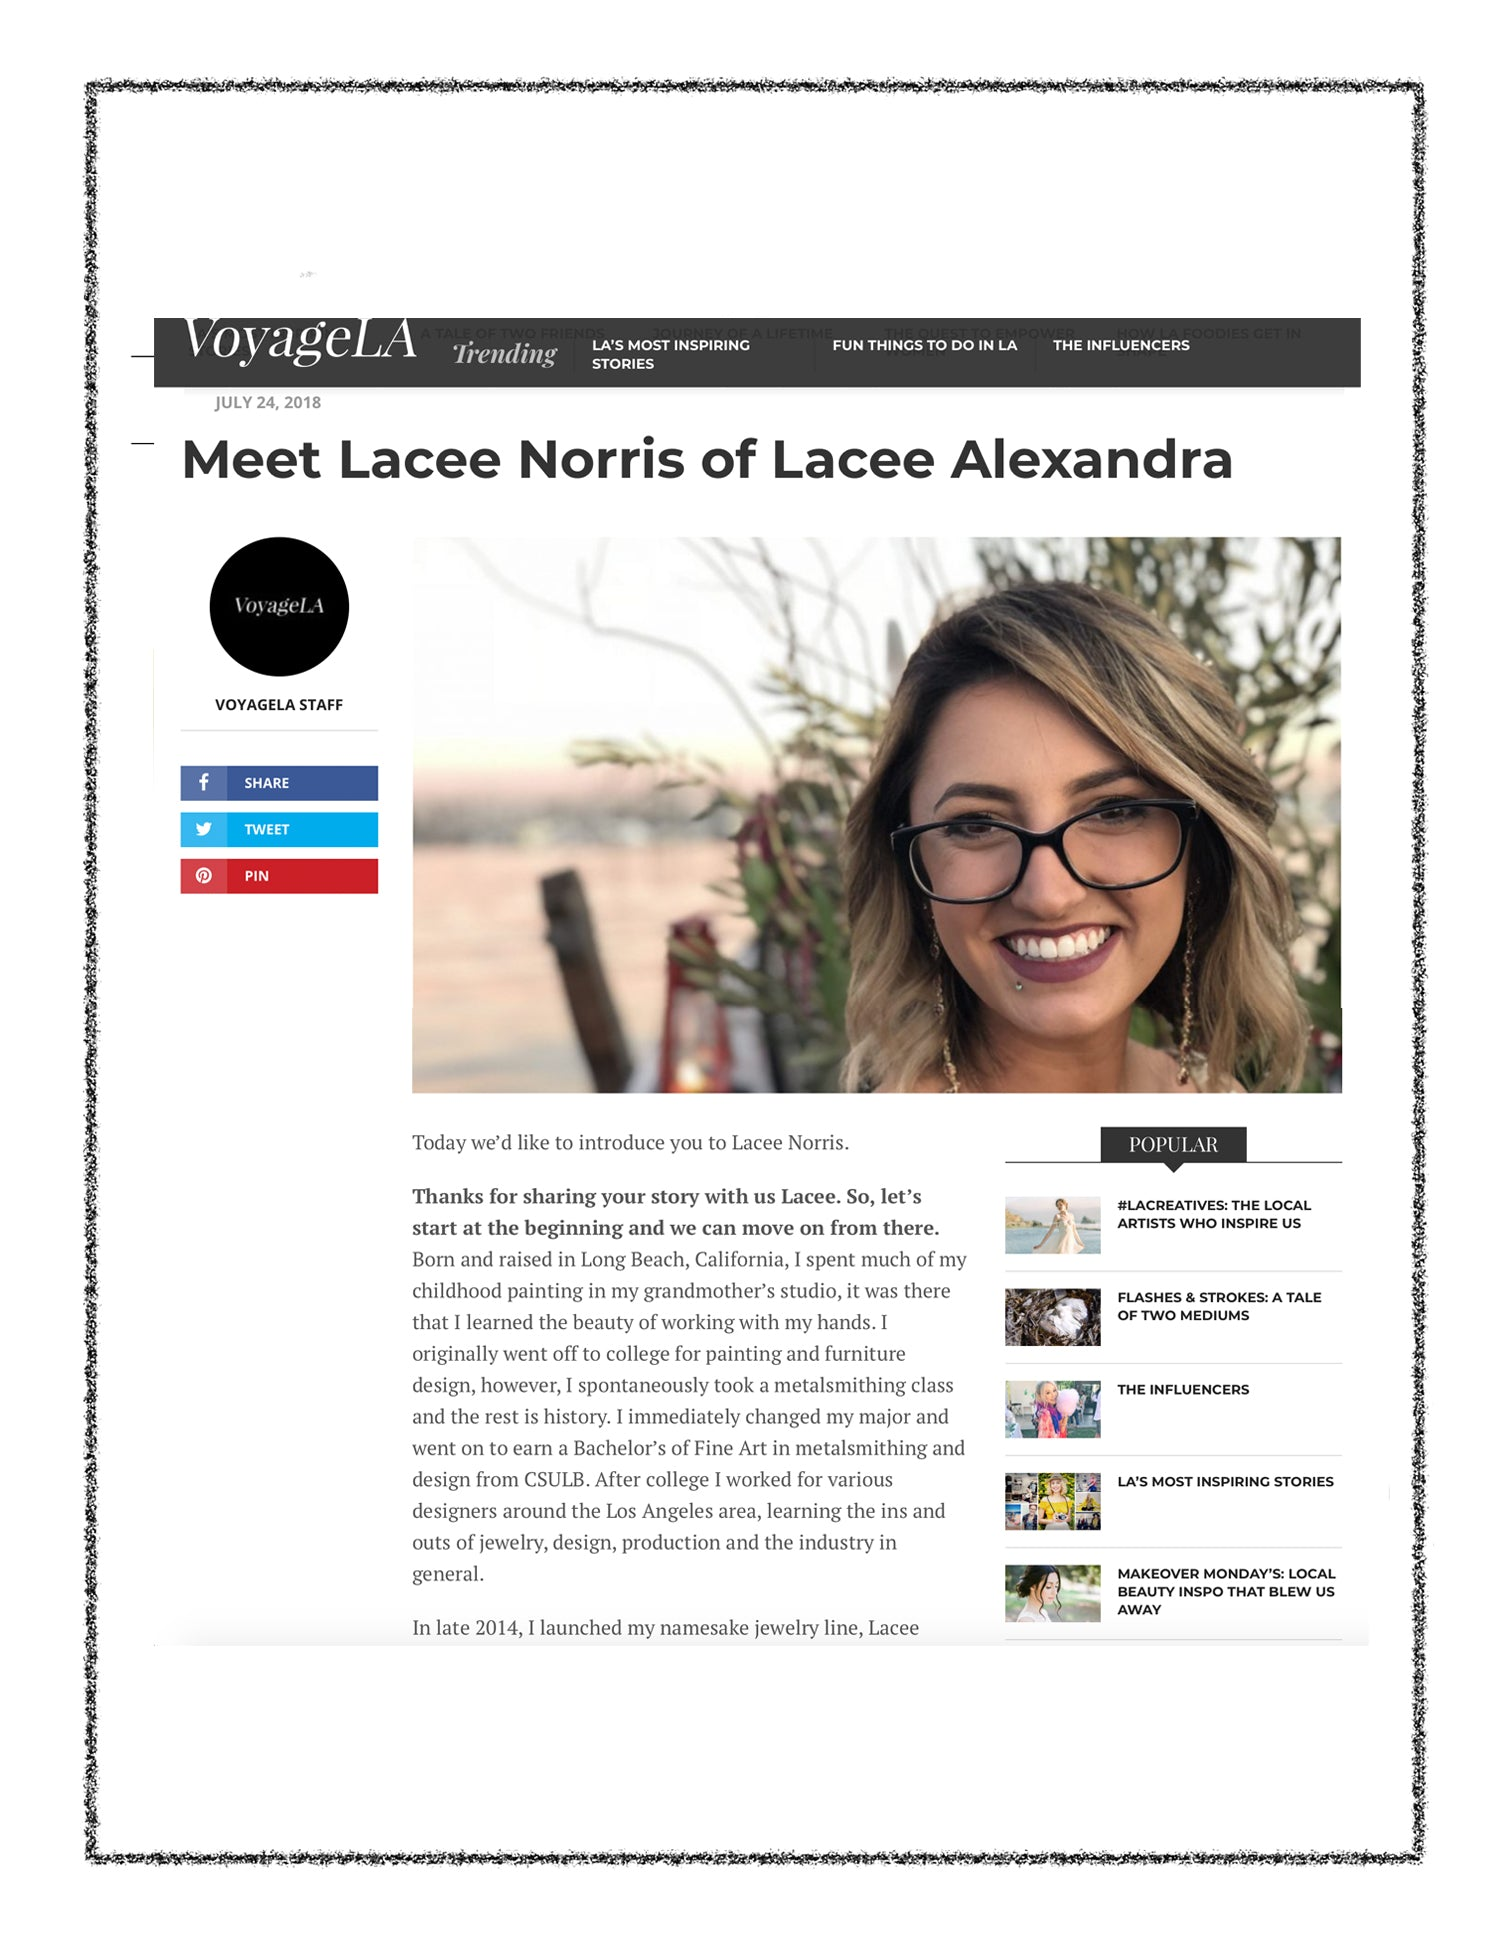 Voyage LA interview with Lacee Alexandra